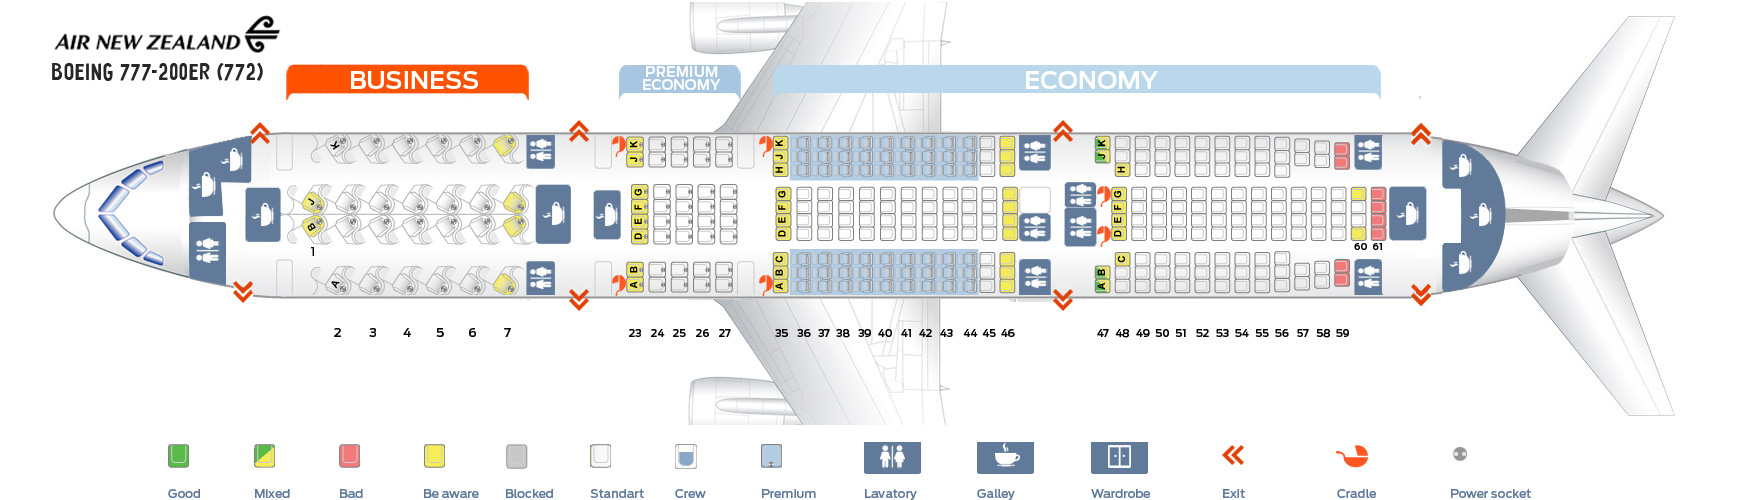 Seat Map Boeing 777-200ER Air New Zealand